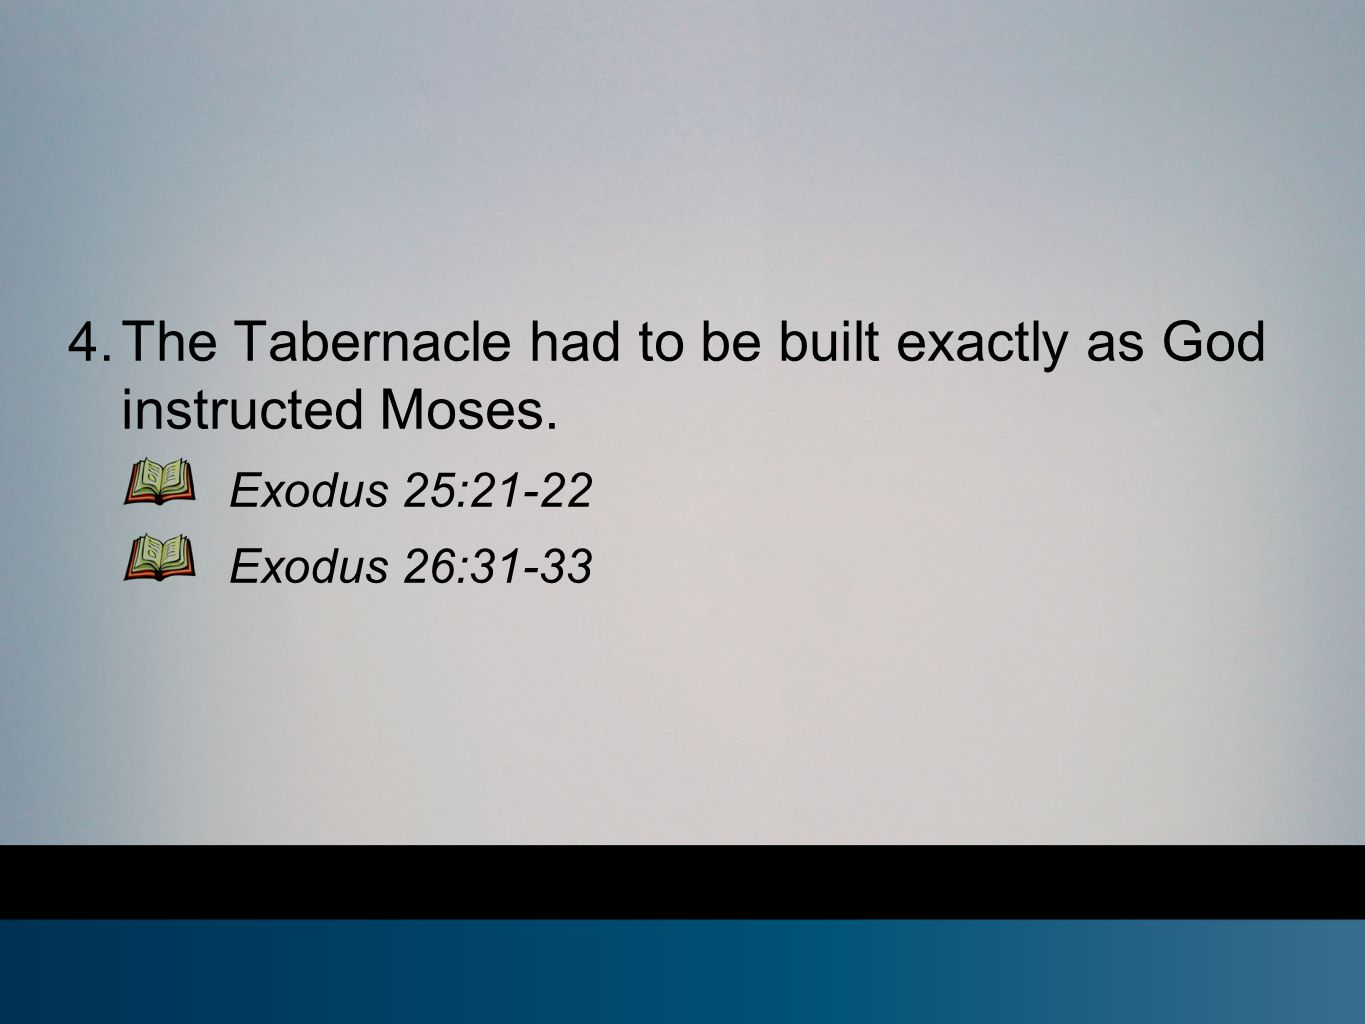 4. The Tabernacle had to be built exactly as God instructed Moses. Exodus 25:21-22 Exodus 26:31-33